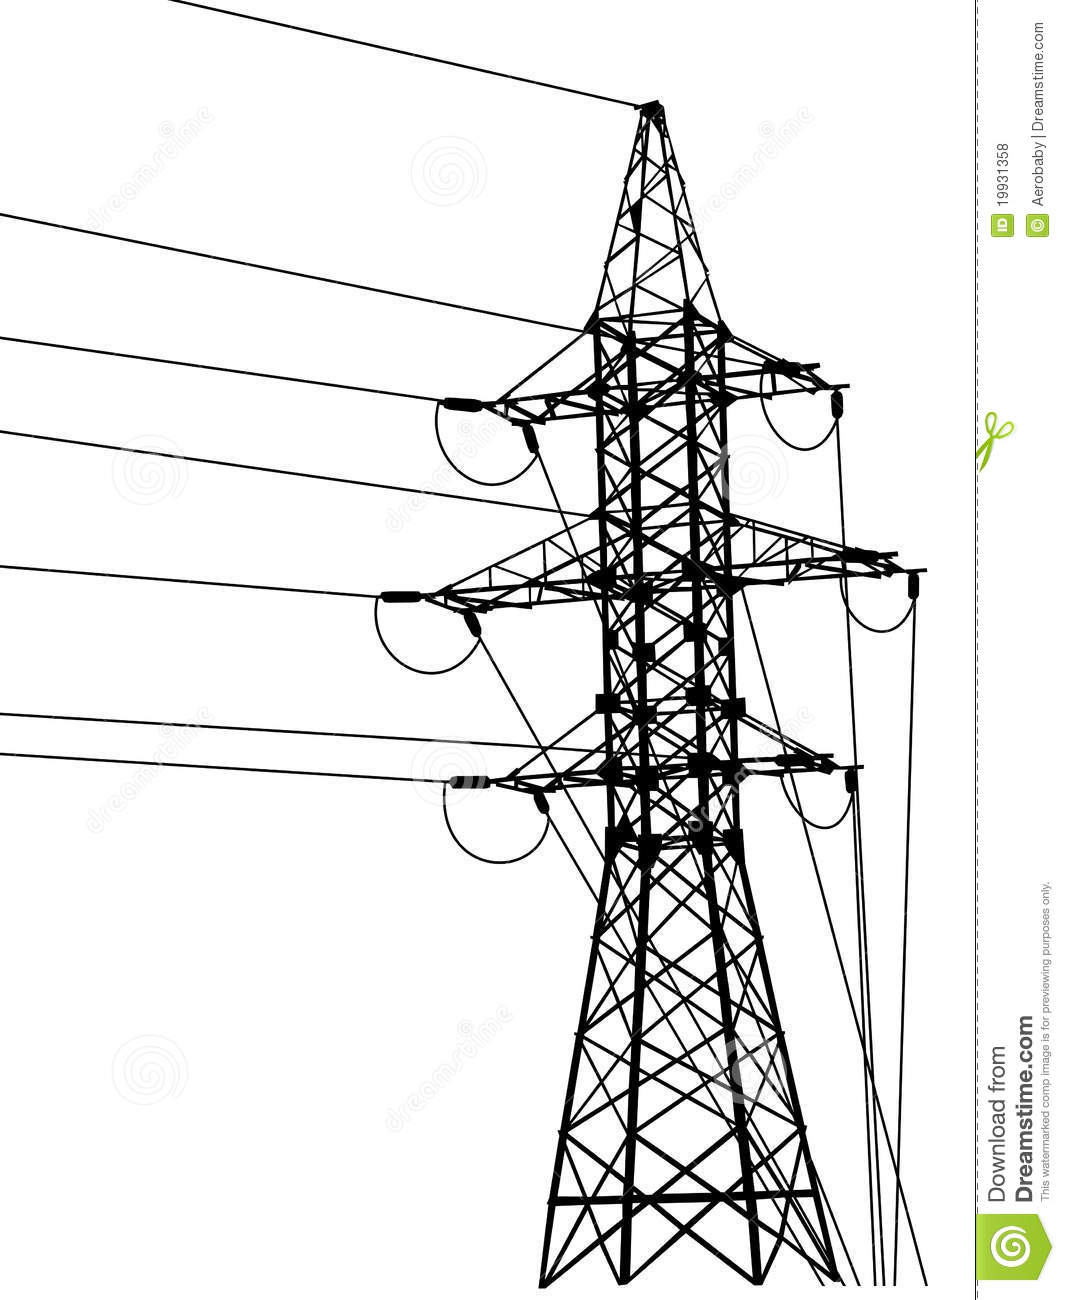 High Voltage Tower Silhouette Stock Vector